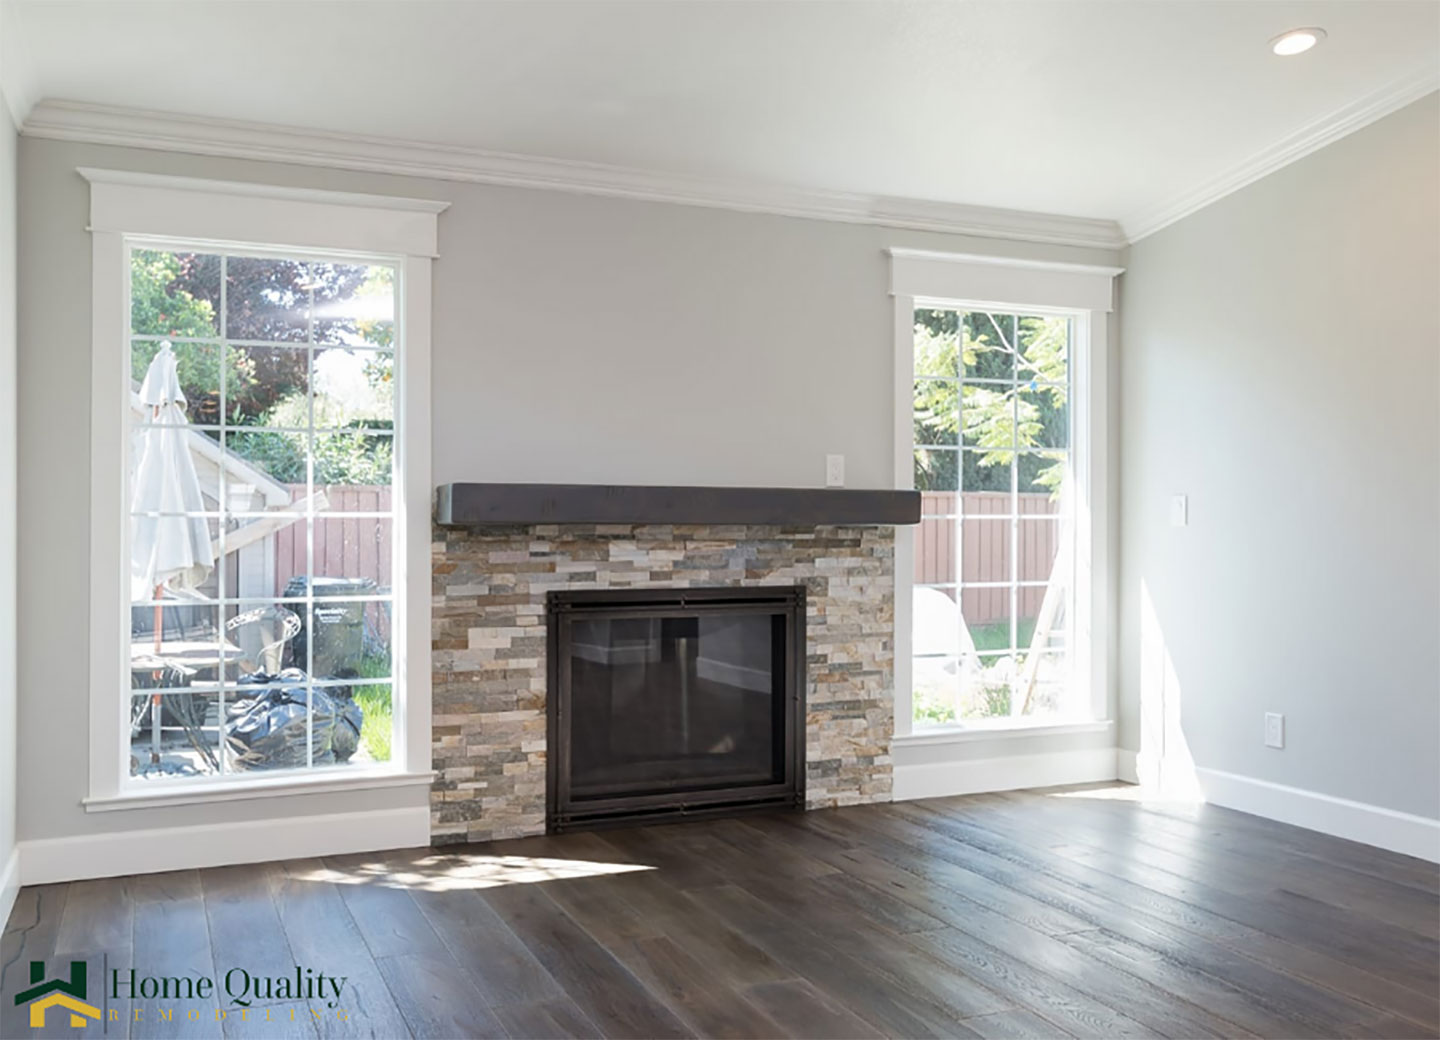 gas fireplace by double windows